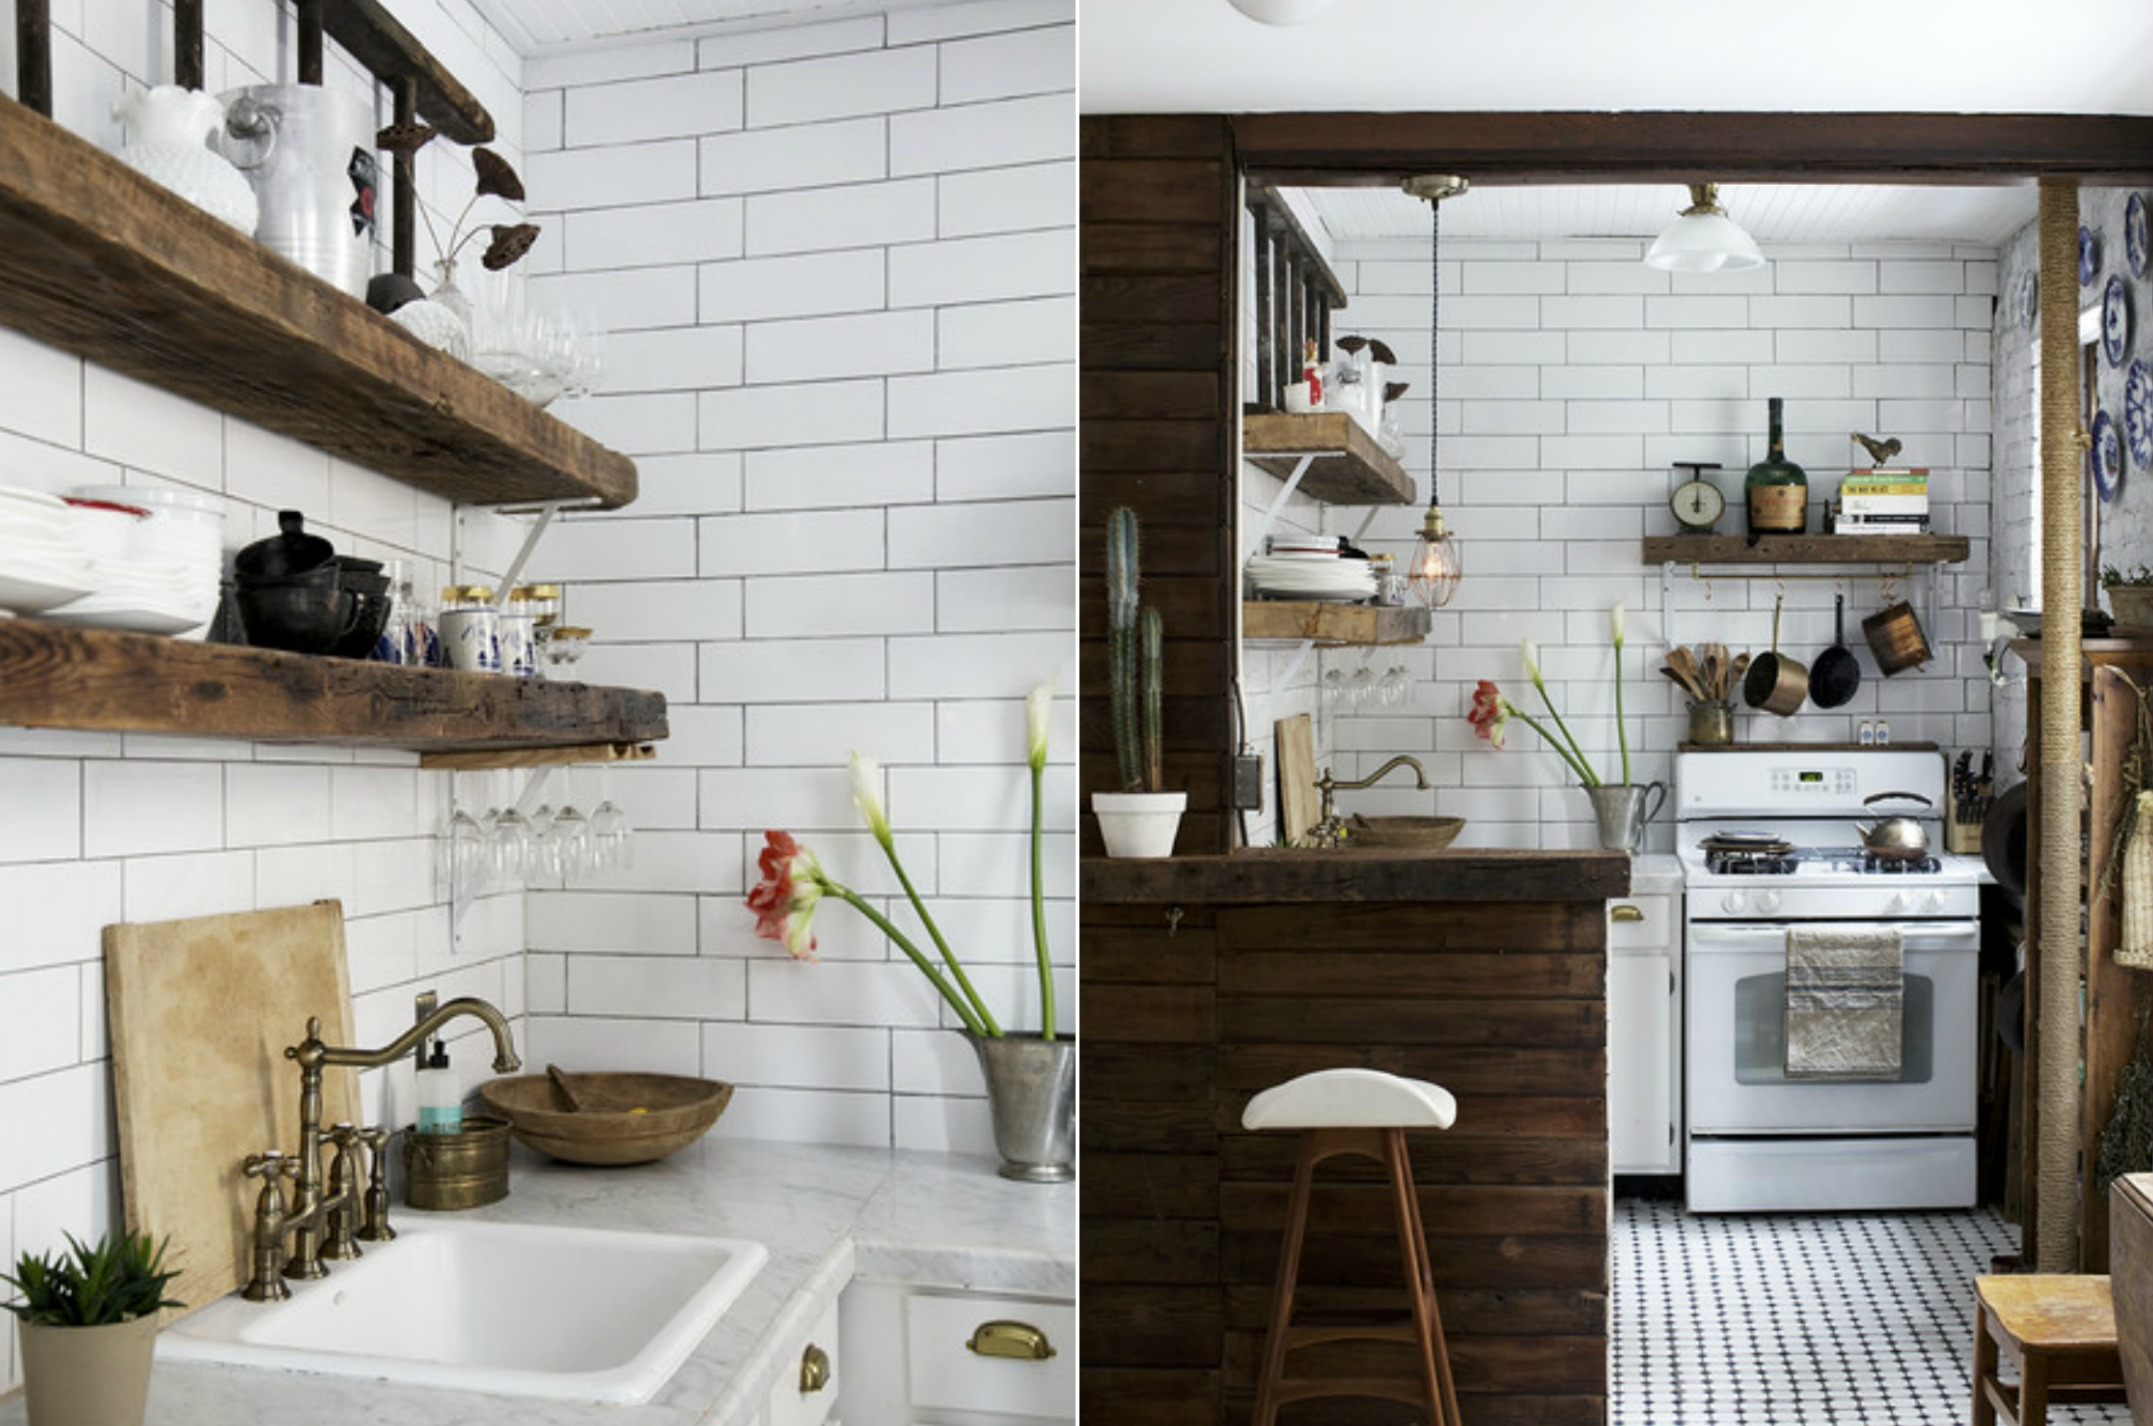 Reclaimed subway tile home design white vintage kitchen with reclaimed wood dailygadgetfo Images